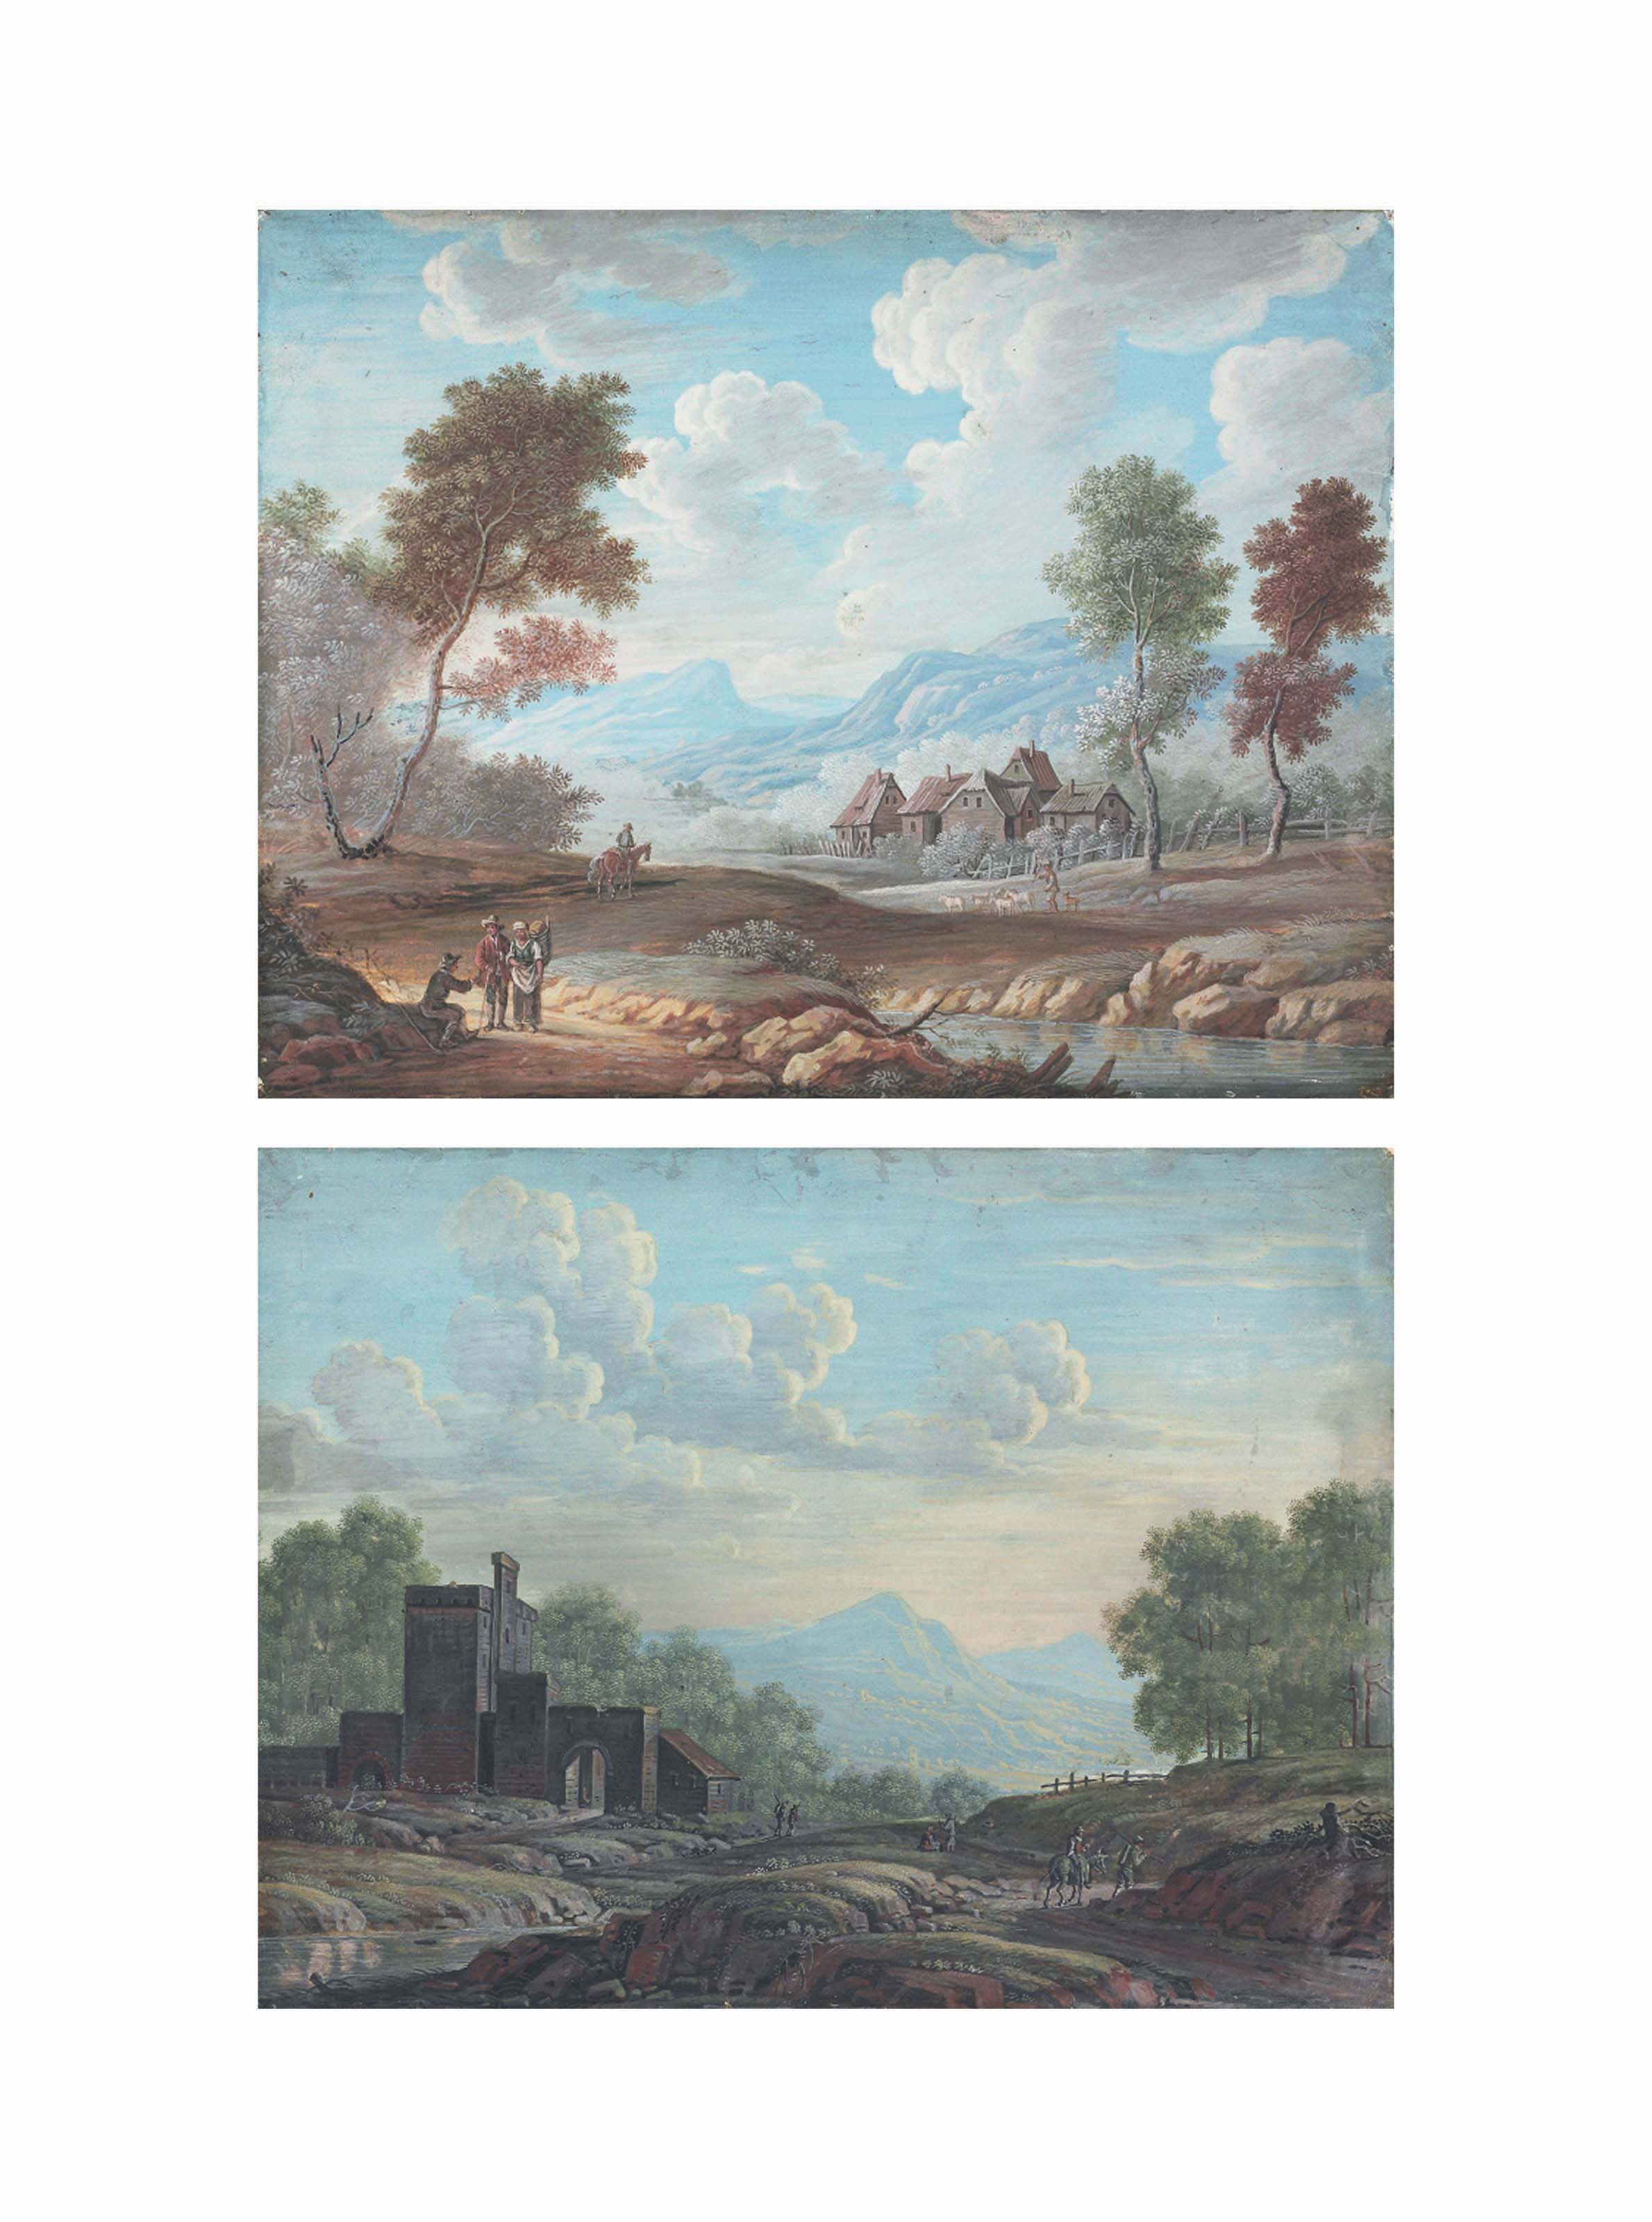 Travellers in a wooded landscape, a village beyond; and A wooded landscape with a castle, travellers on a road